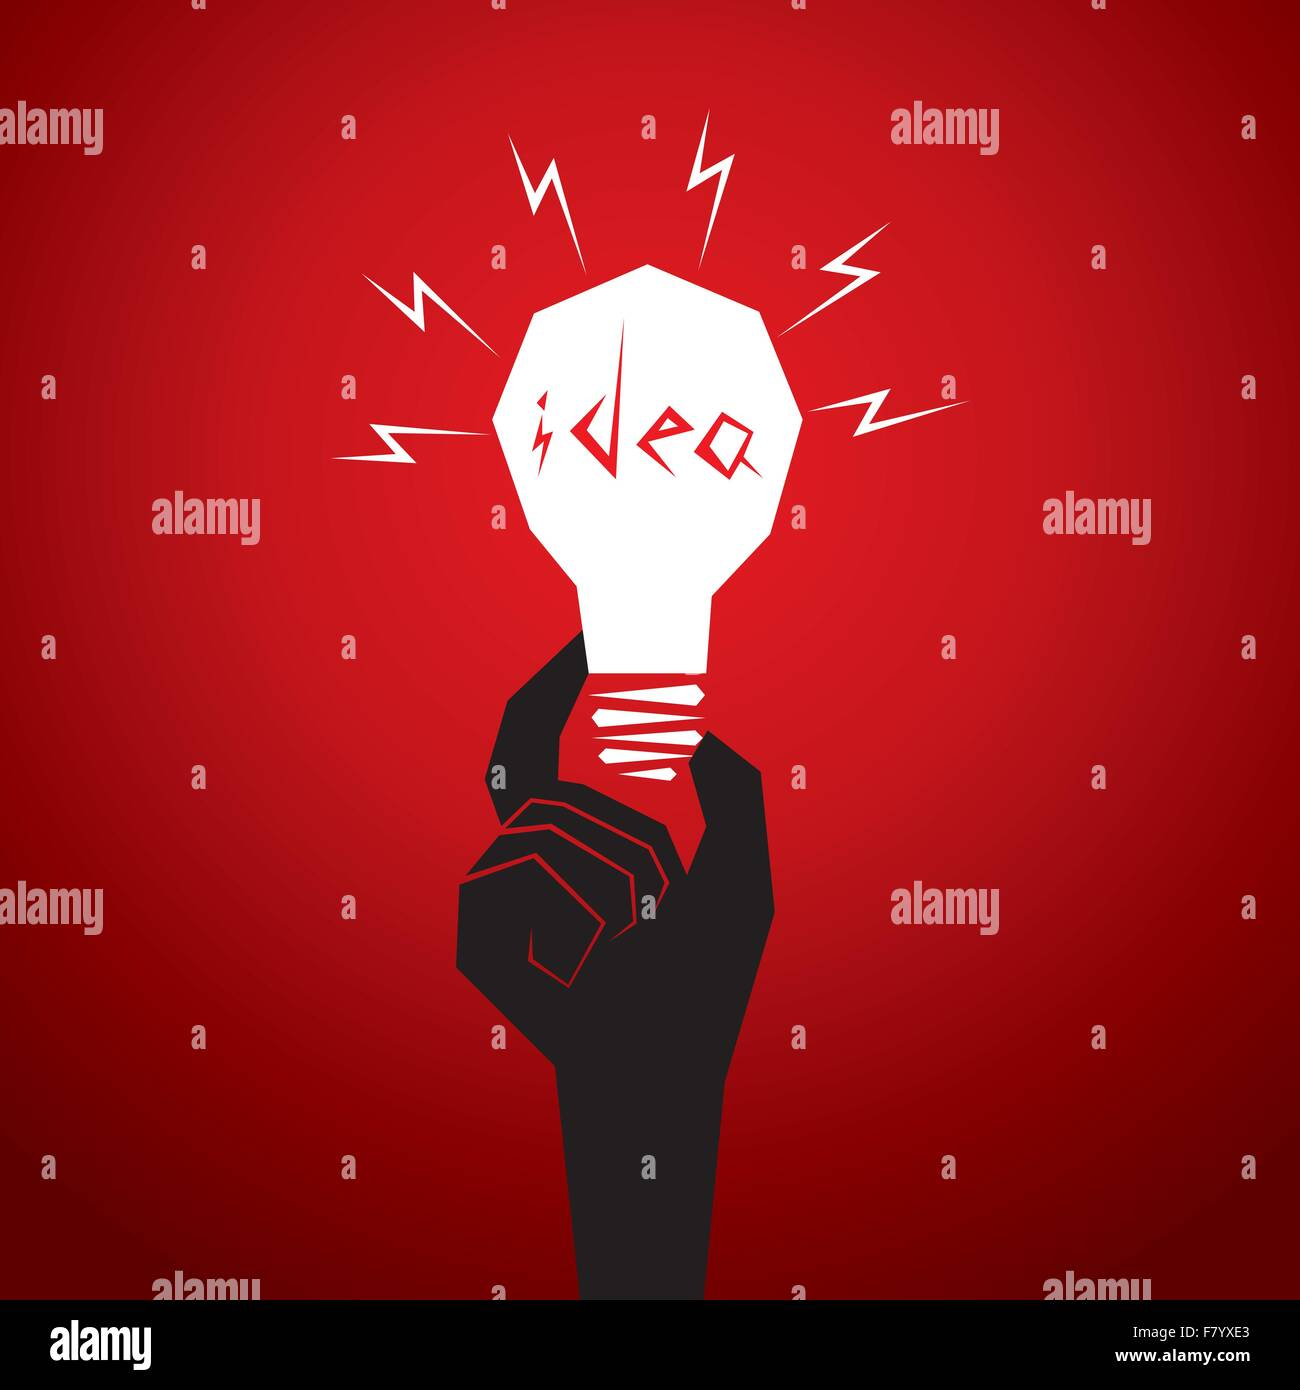 new idea concept men head in bulb - Stock Image